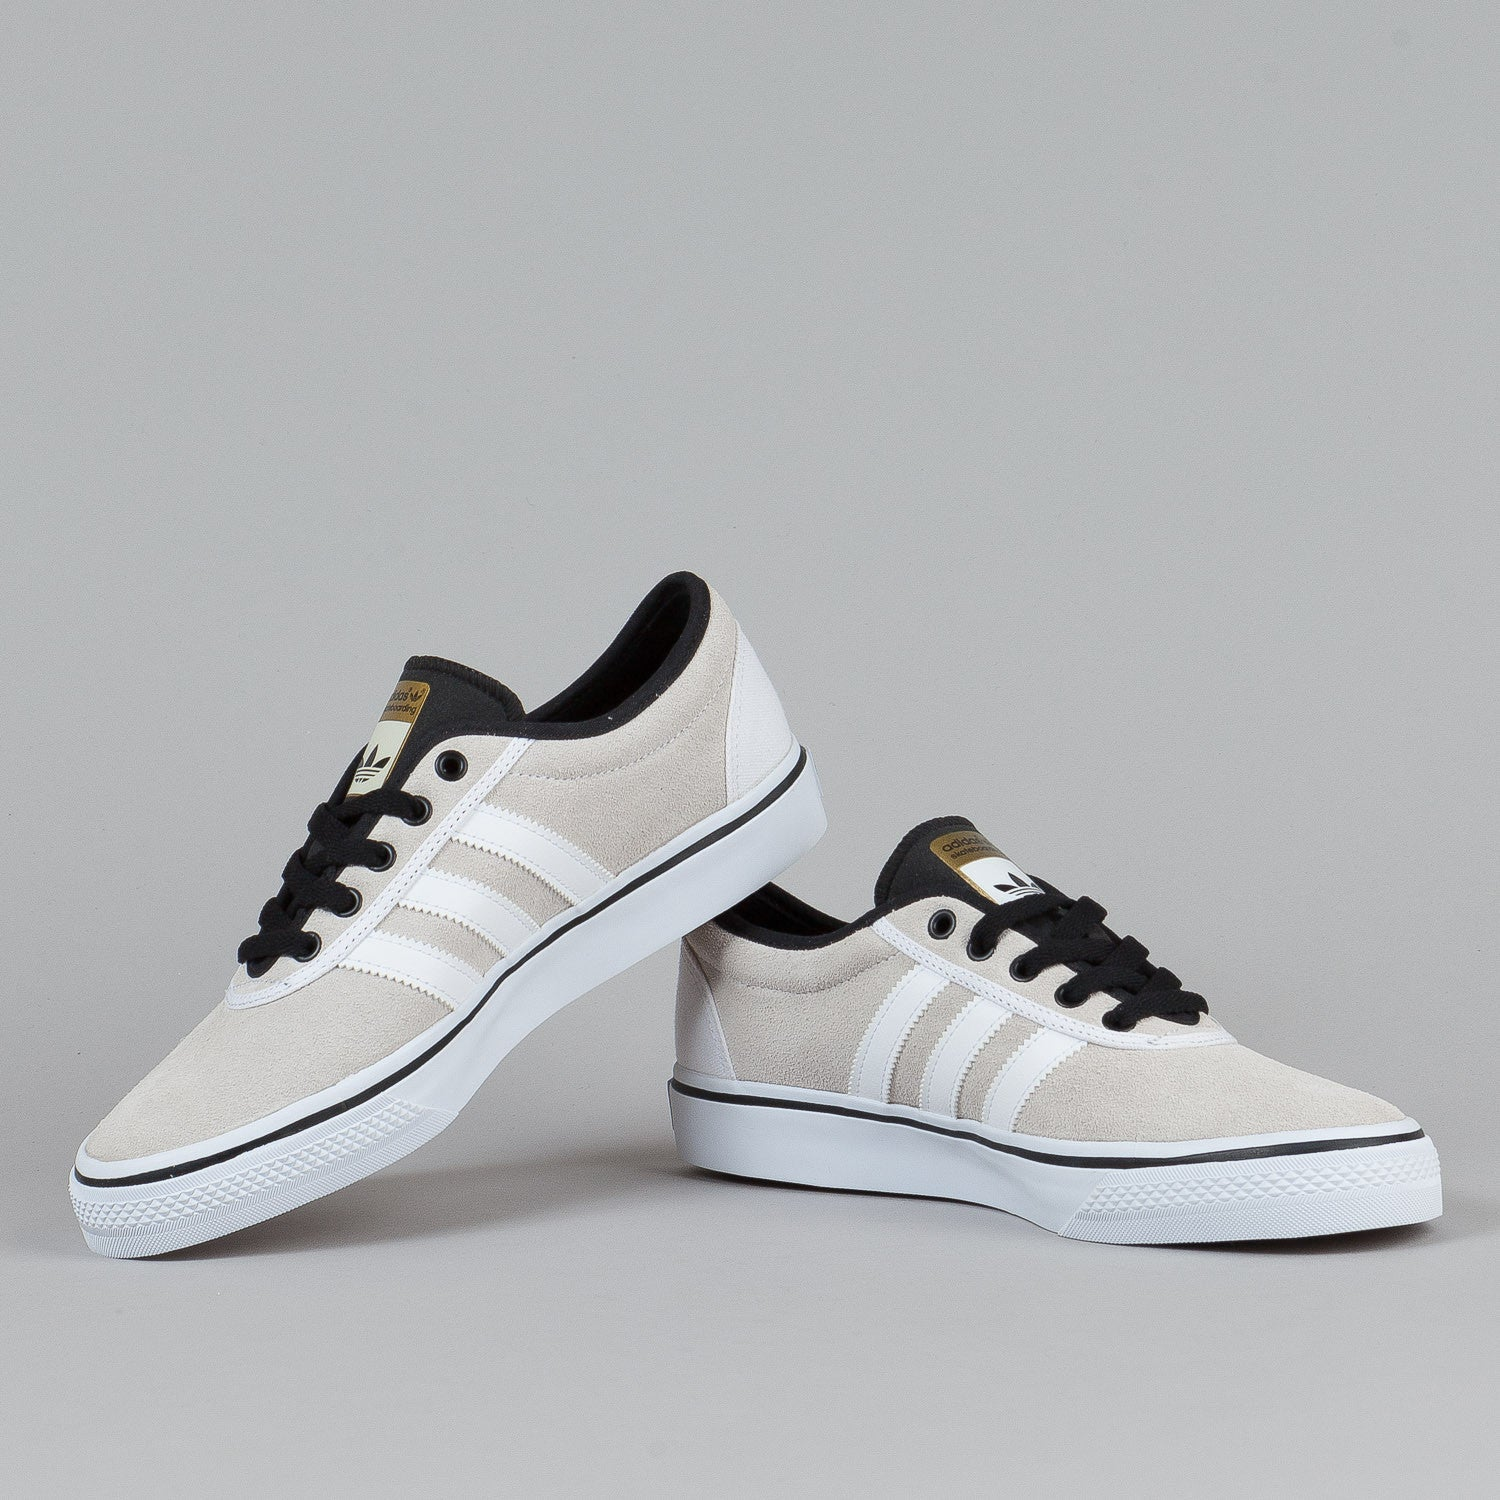 Adidas Adi-Ease 2 White / Black / White